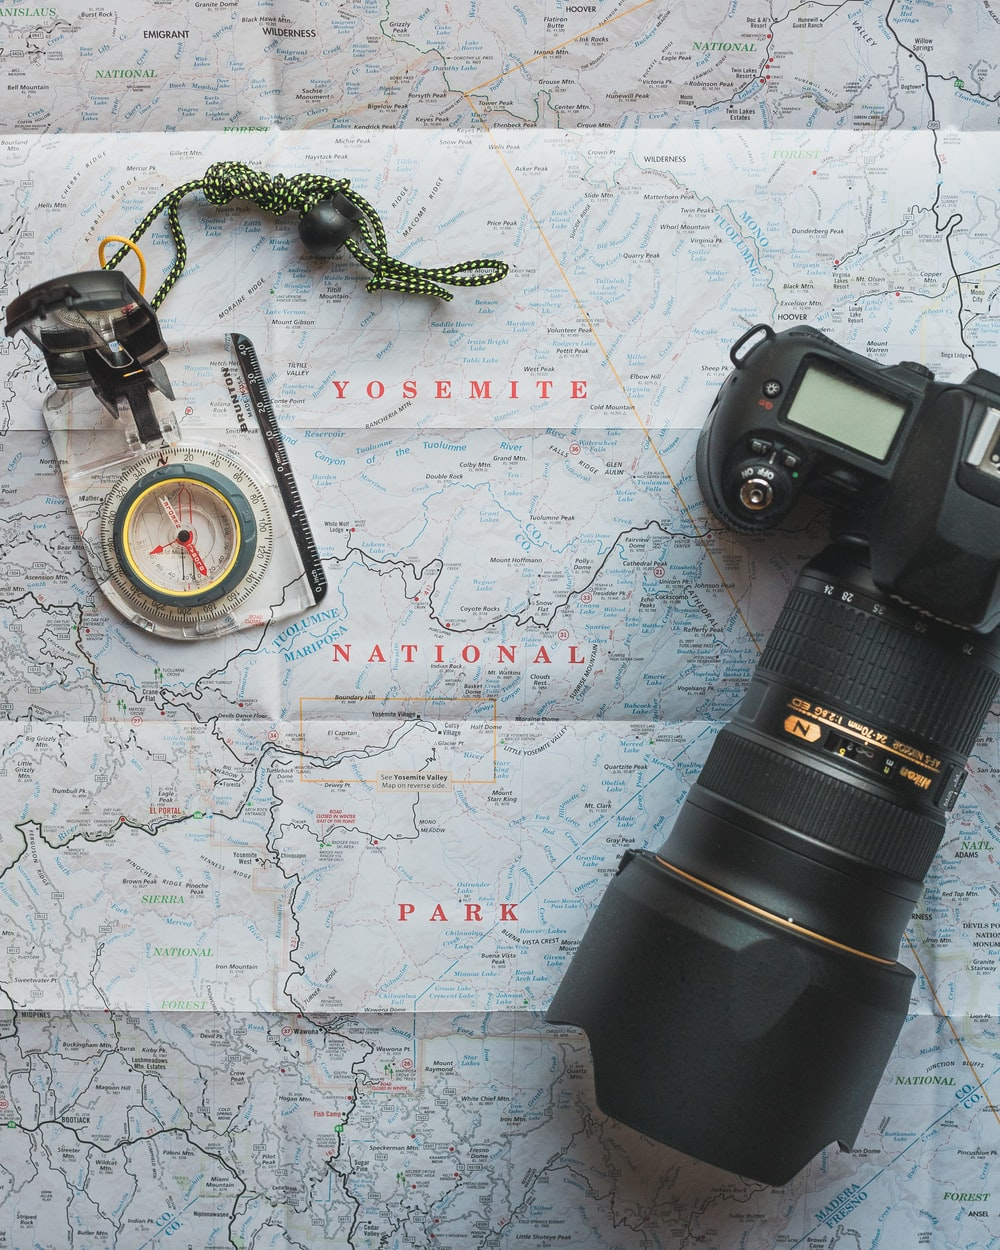 black Nikon DSLR camera beside of map compass